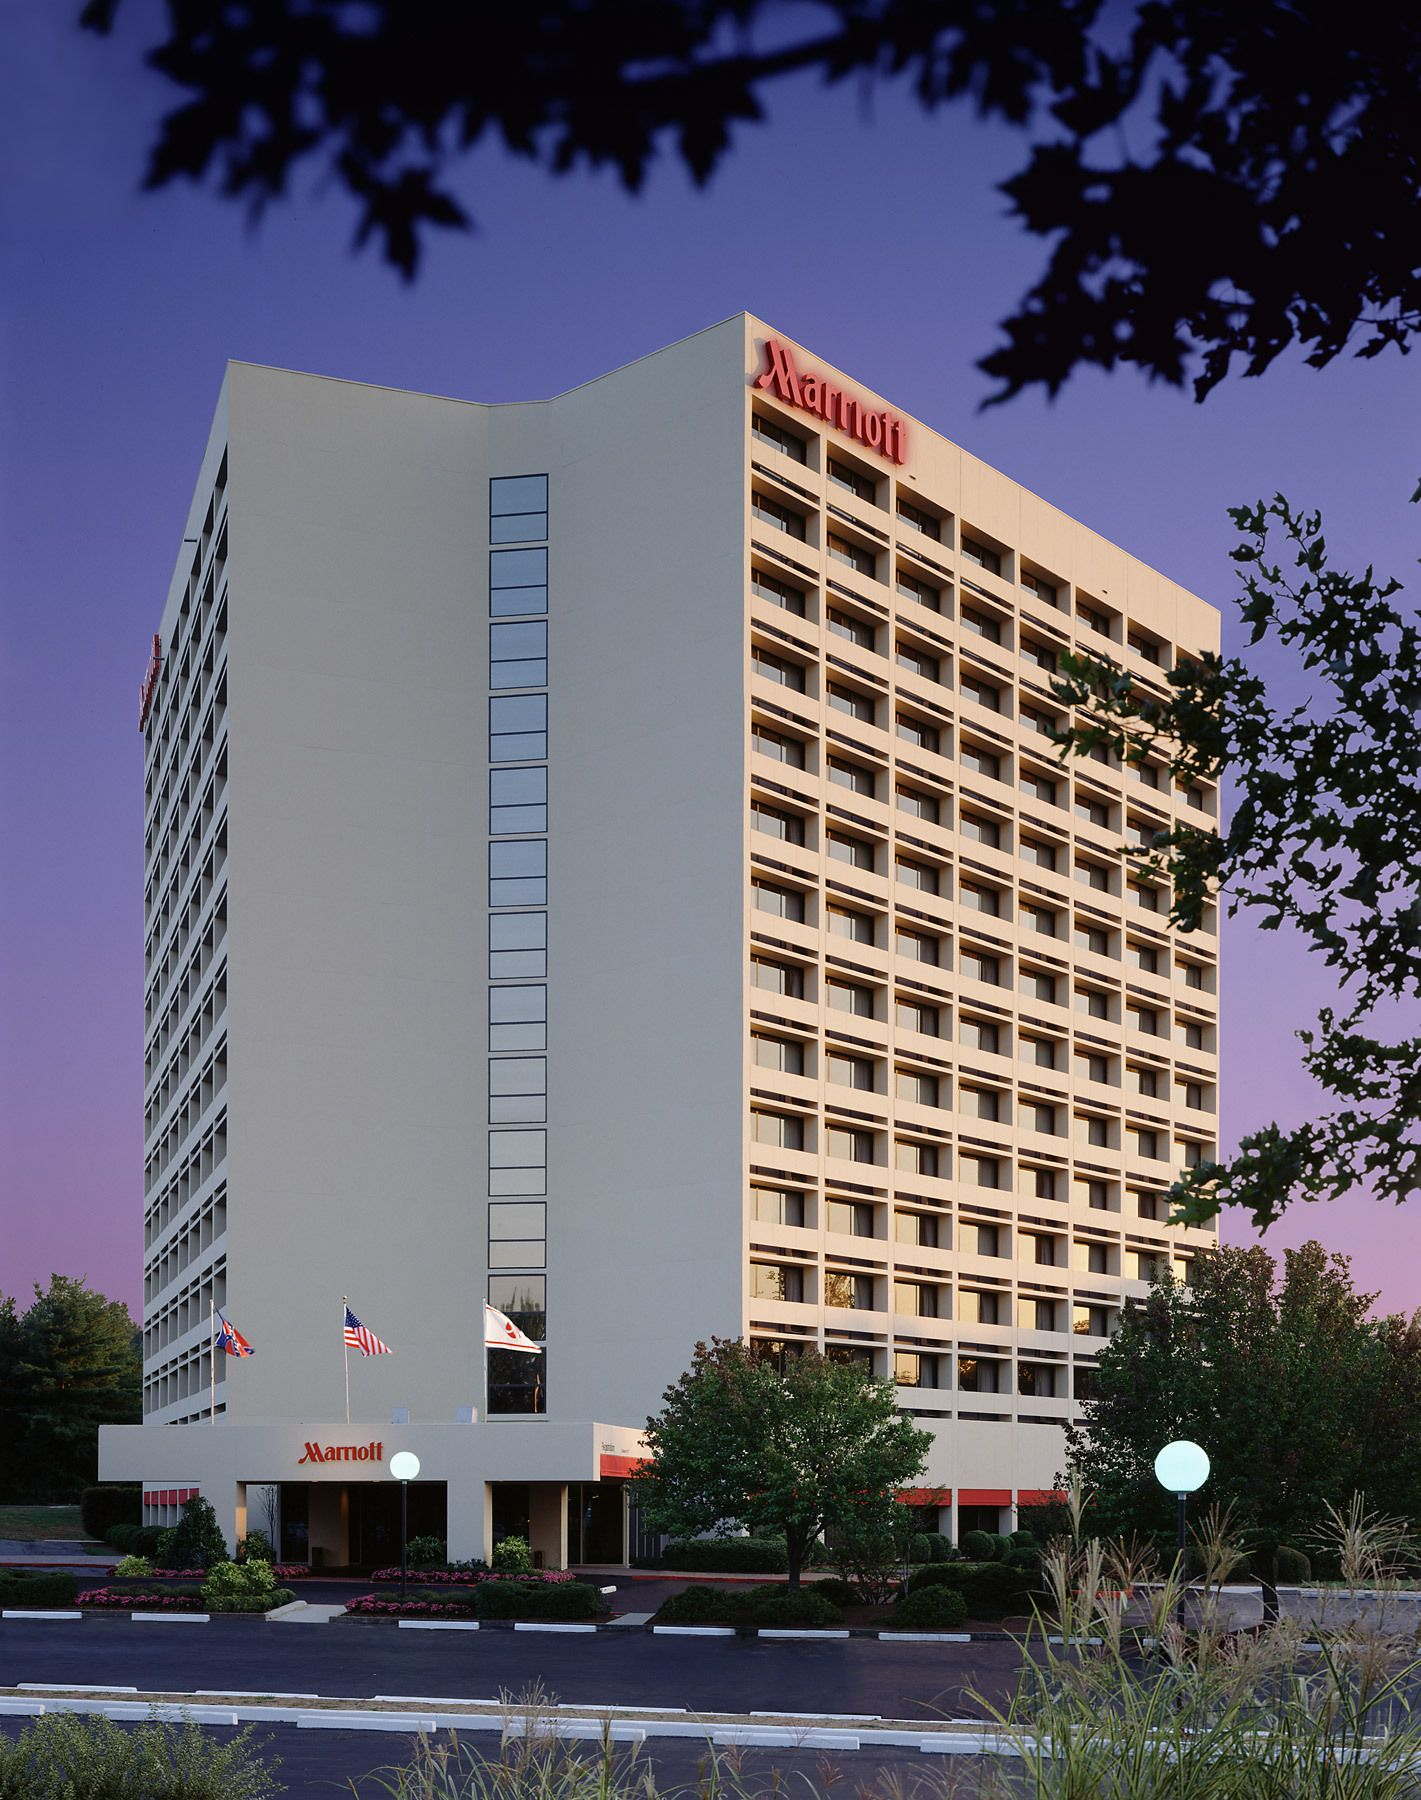 1marriott_centuryctr_ext.jpg